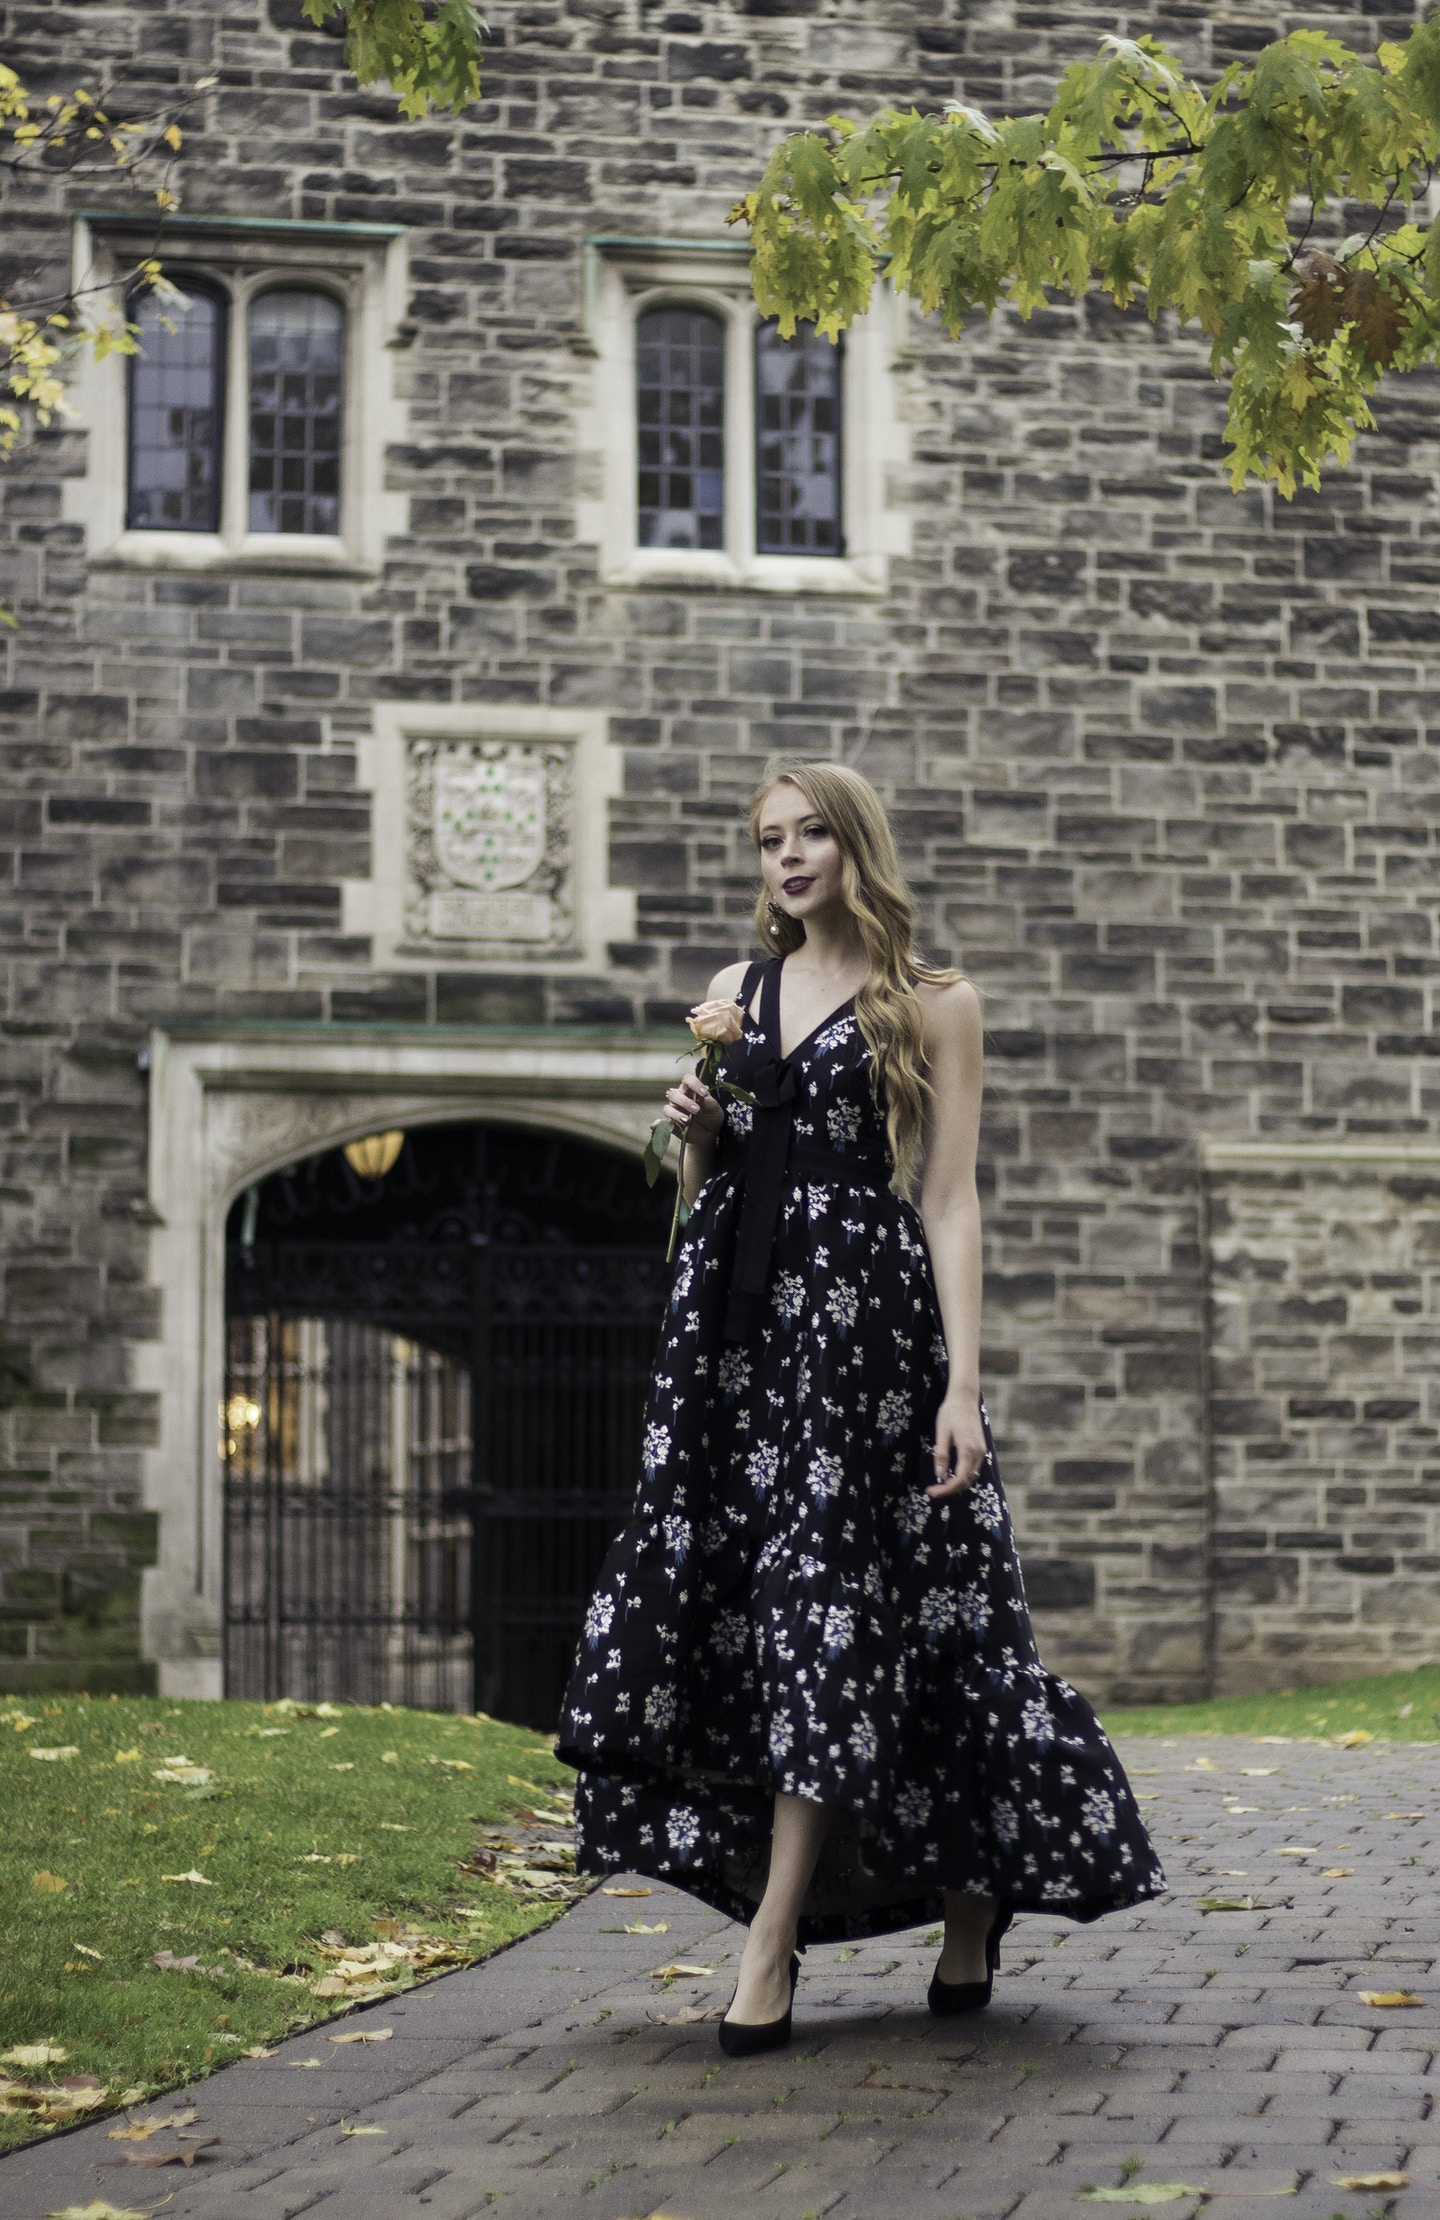 Erdem for H&M Lookbook